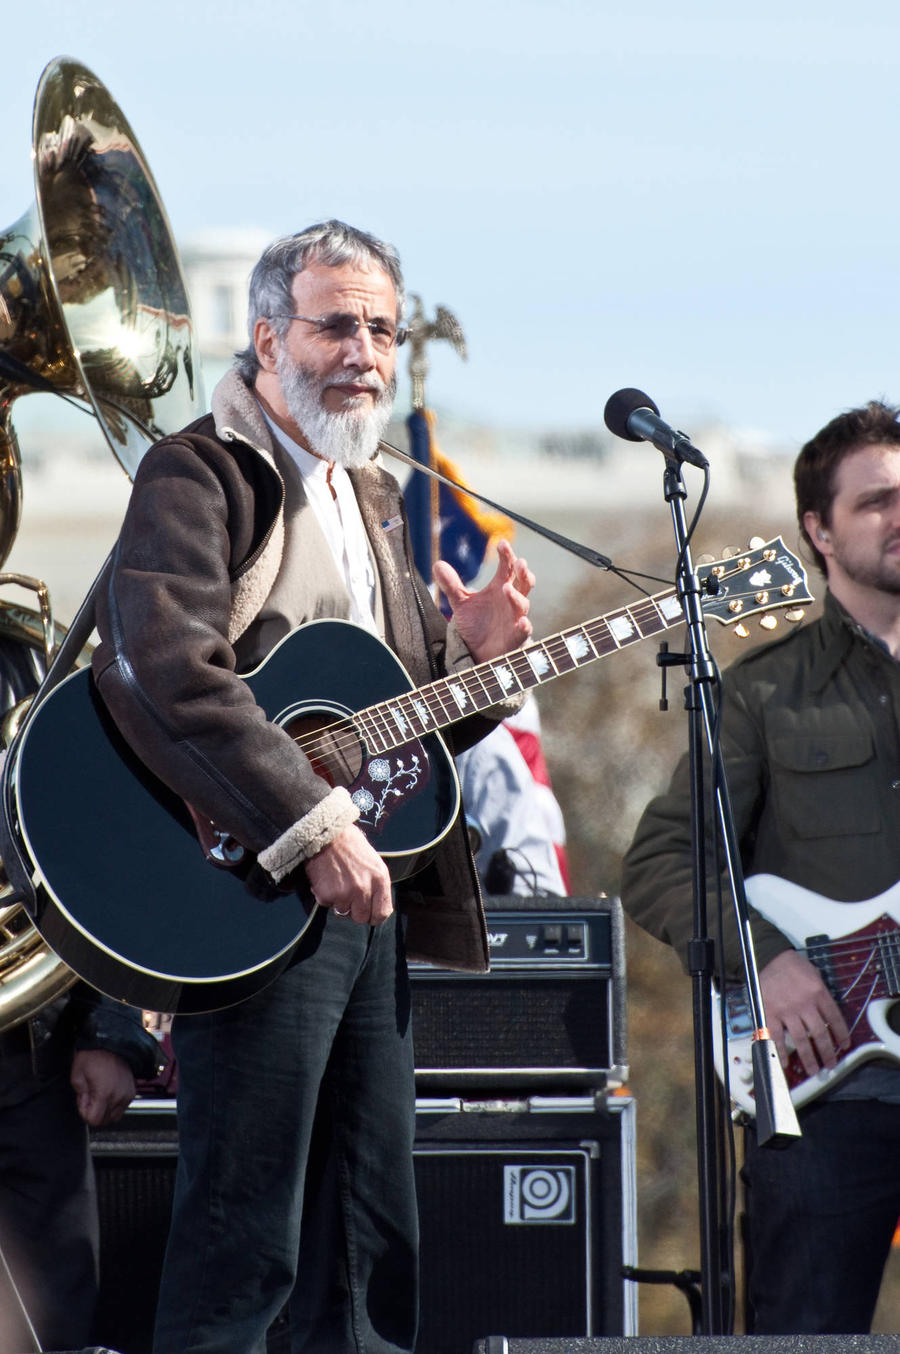 Yusuf To Tour North America To Mark 50th Anniversary Of First Hit